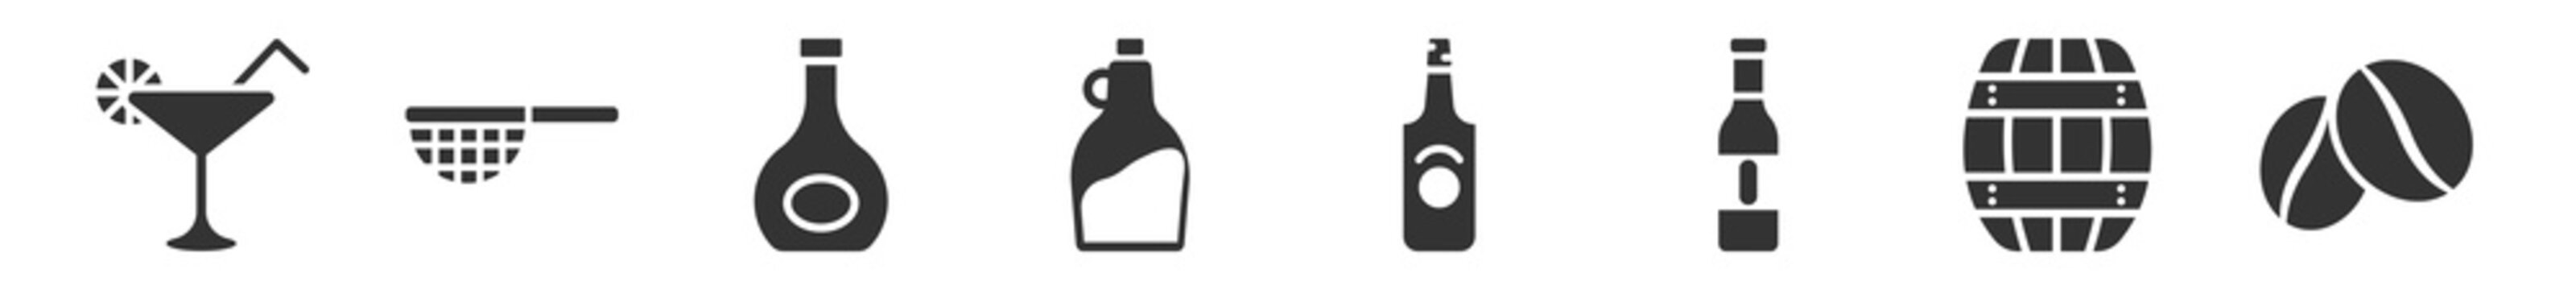 filled set of drinks icons. glyph vector icons such as cosmopolitan, sieve, armagnac, tuba, malibu, coffee bean. vector illustration.